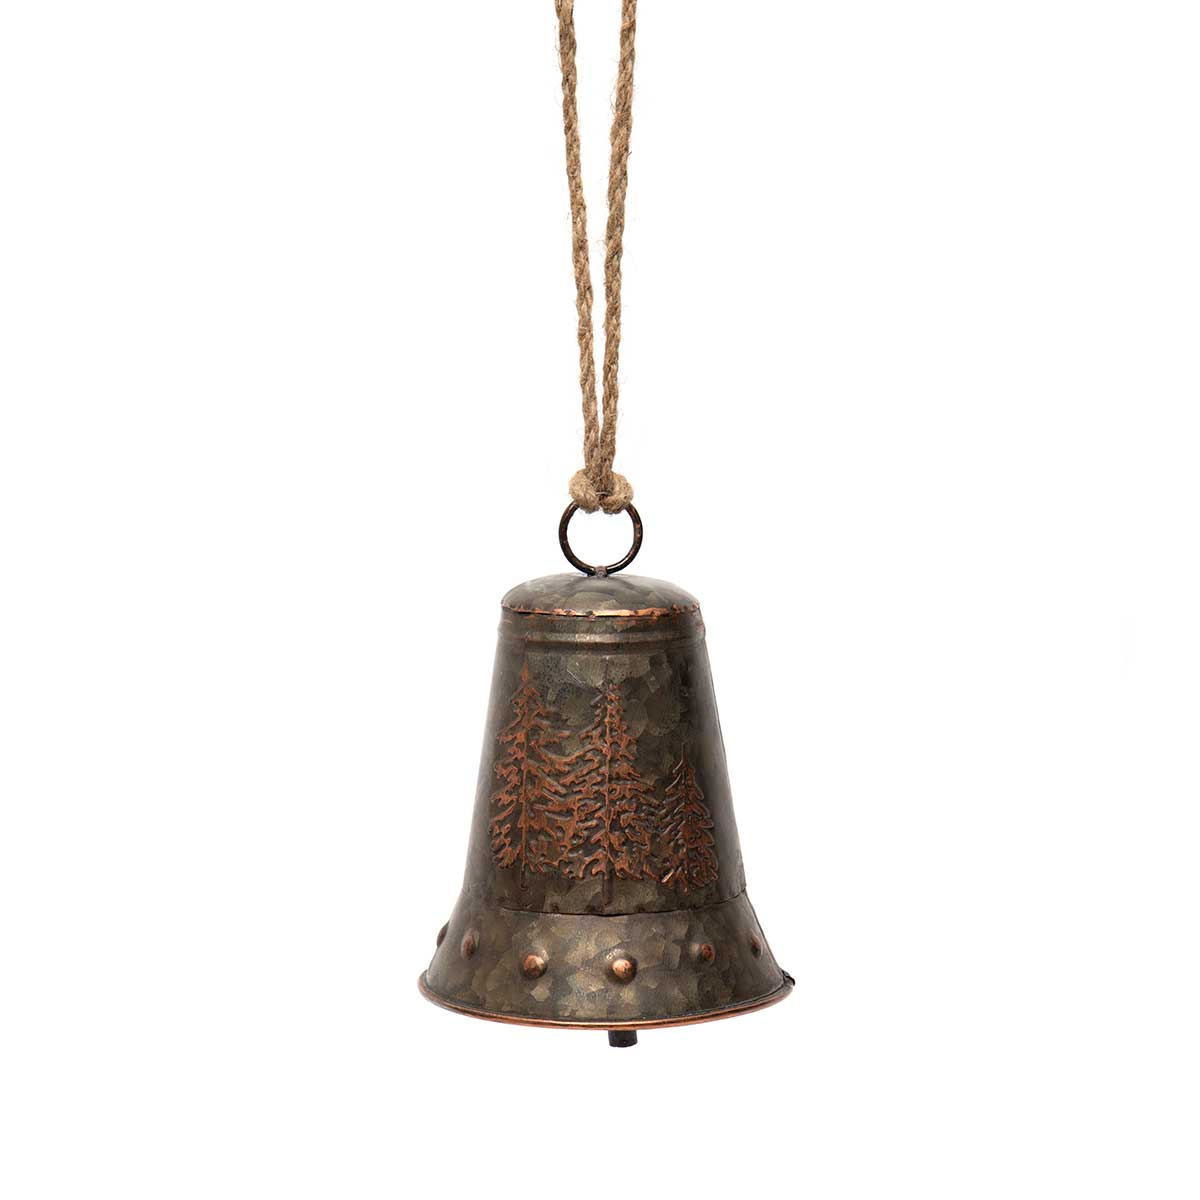 BRONZE FINISH METAL BELL